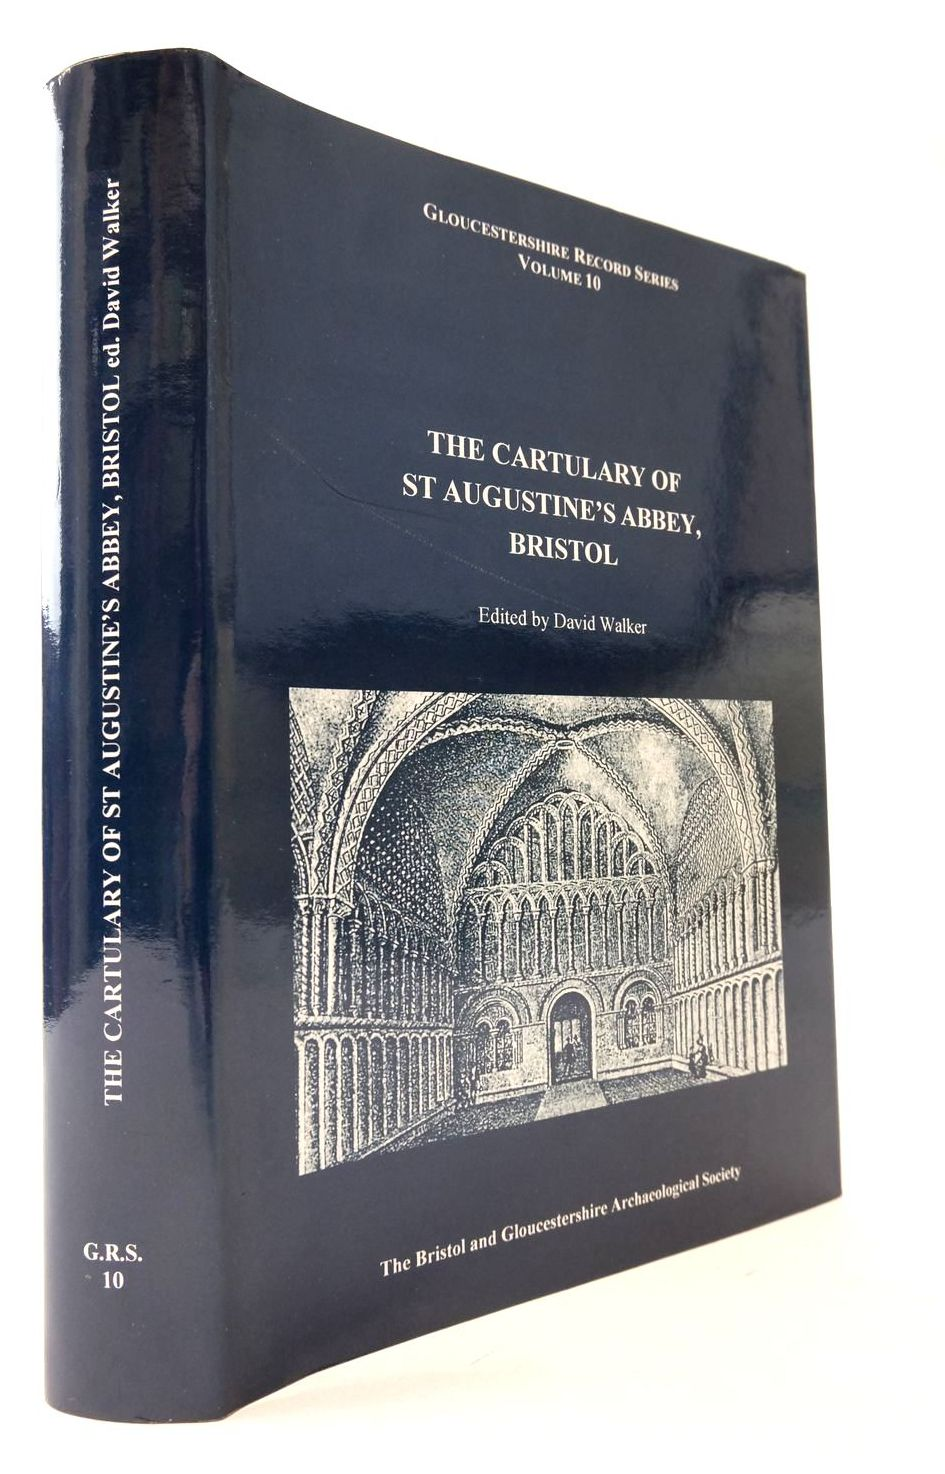 Photo of THE CARTULARY OF ST AUGUSTINE'S ABBEY BRISTOL- Stock Number: 2133260